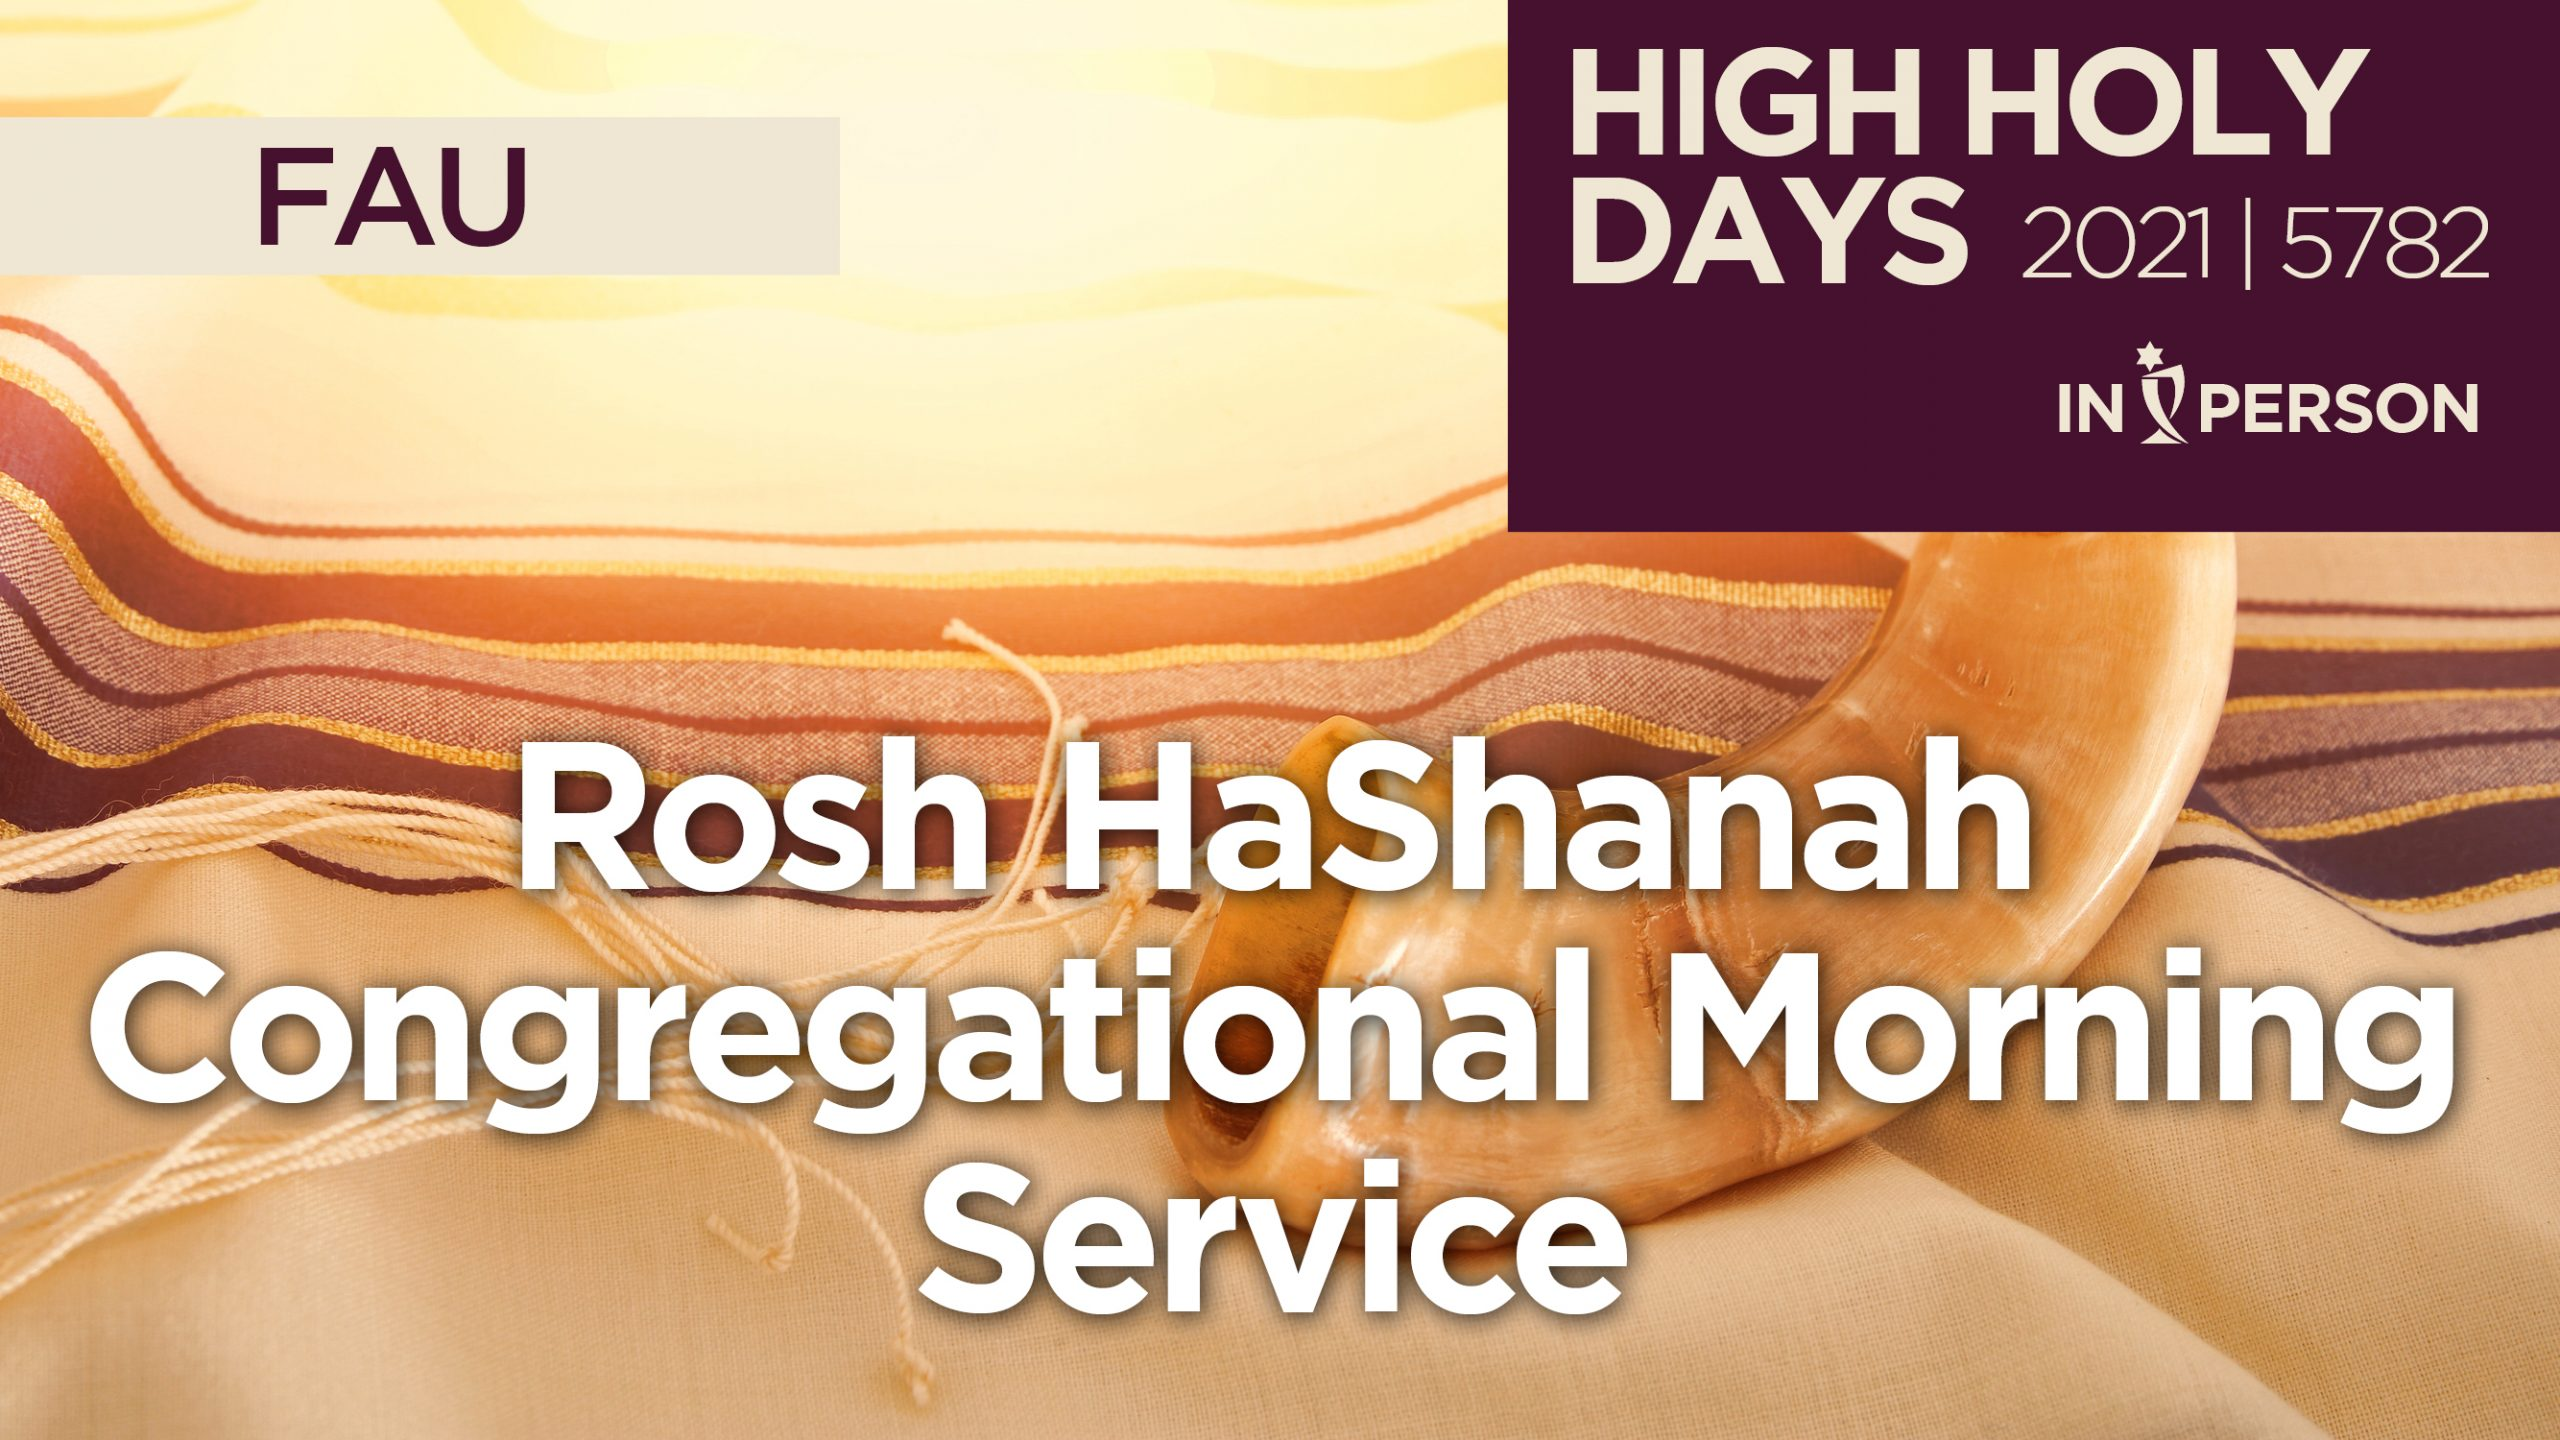 Rosh HaShanah Services Announcement Graphic for 2021 5782 at FAU